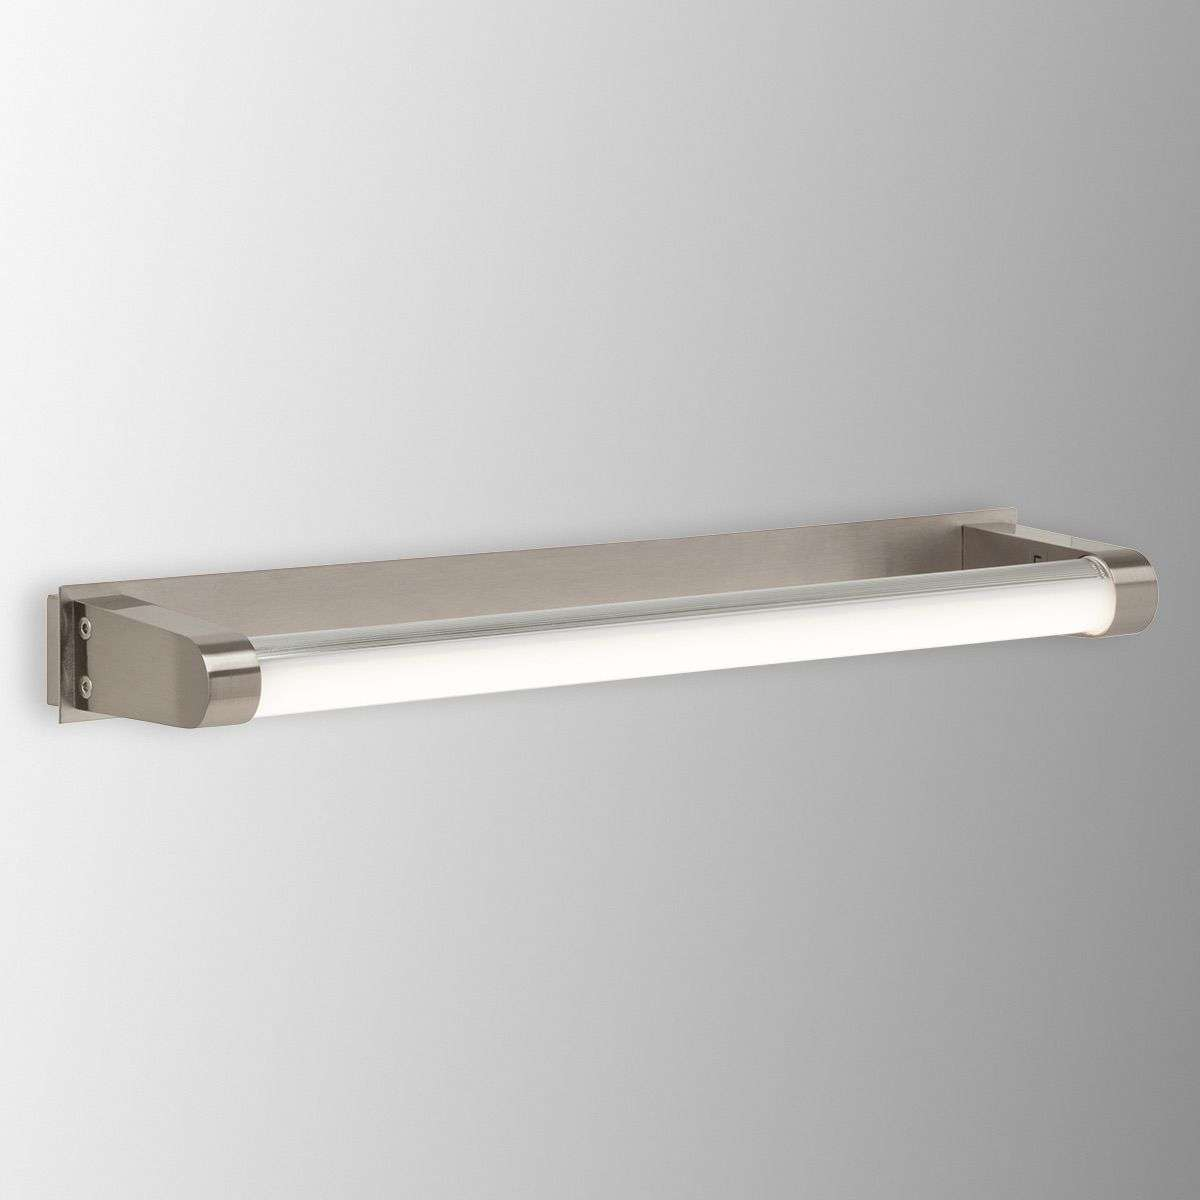 Applique a LED Use con corpo orientabile-1508955-31